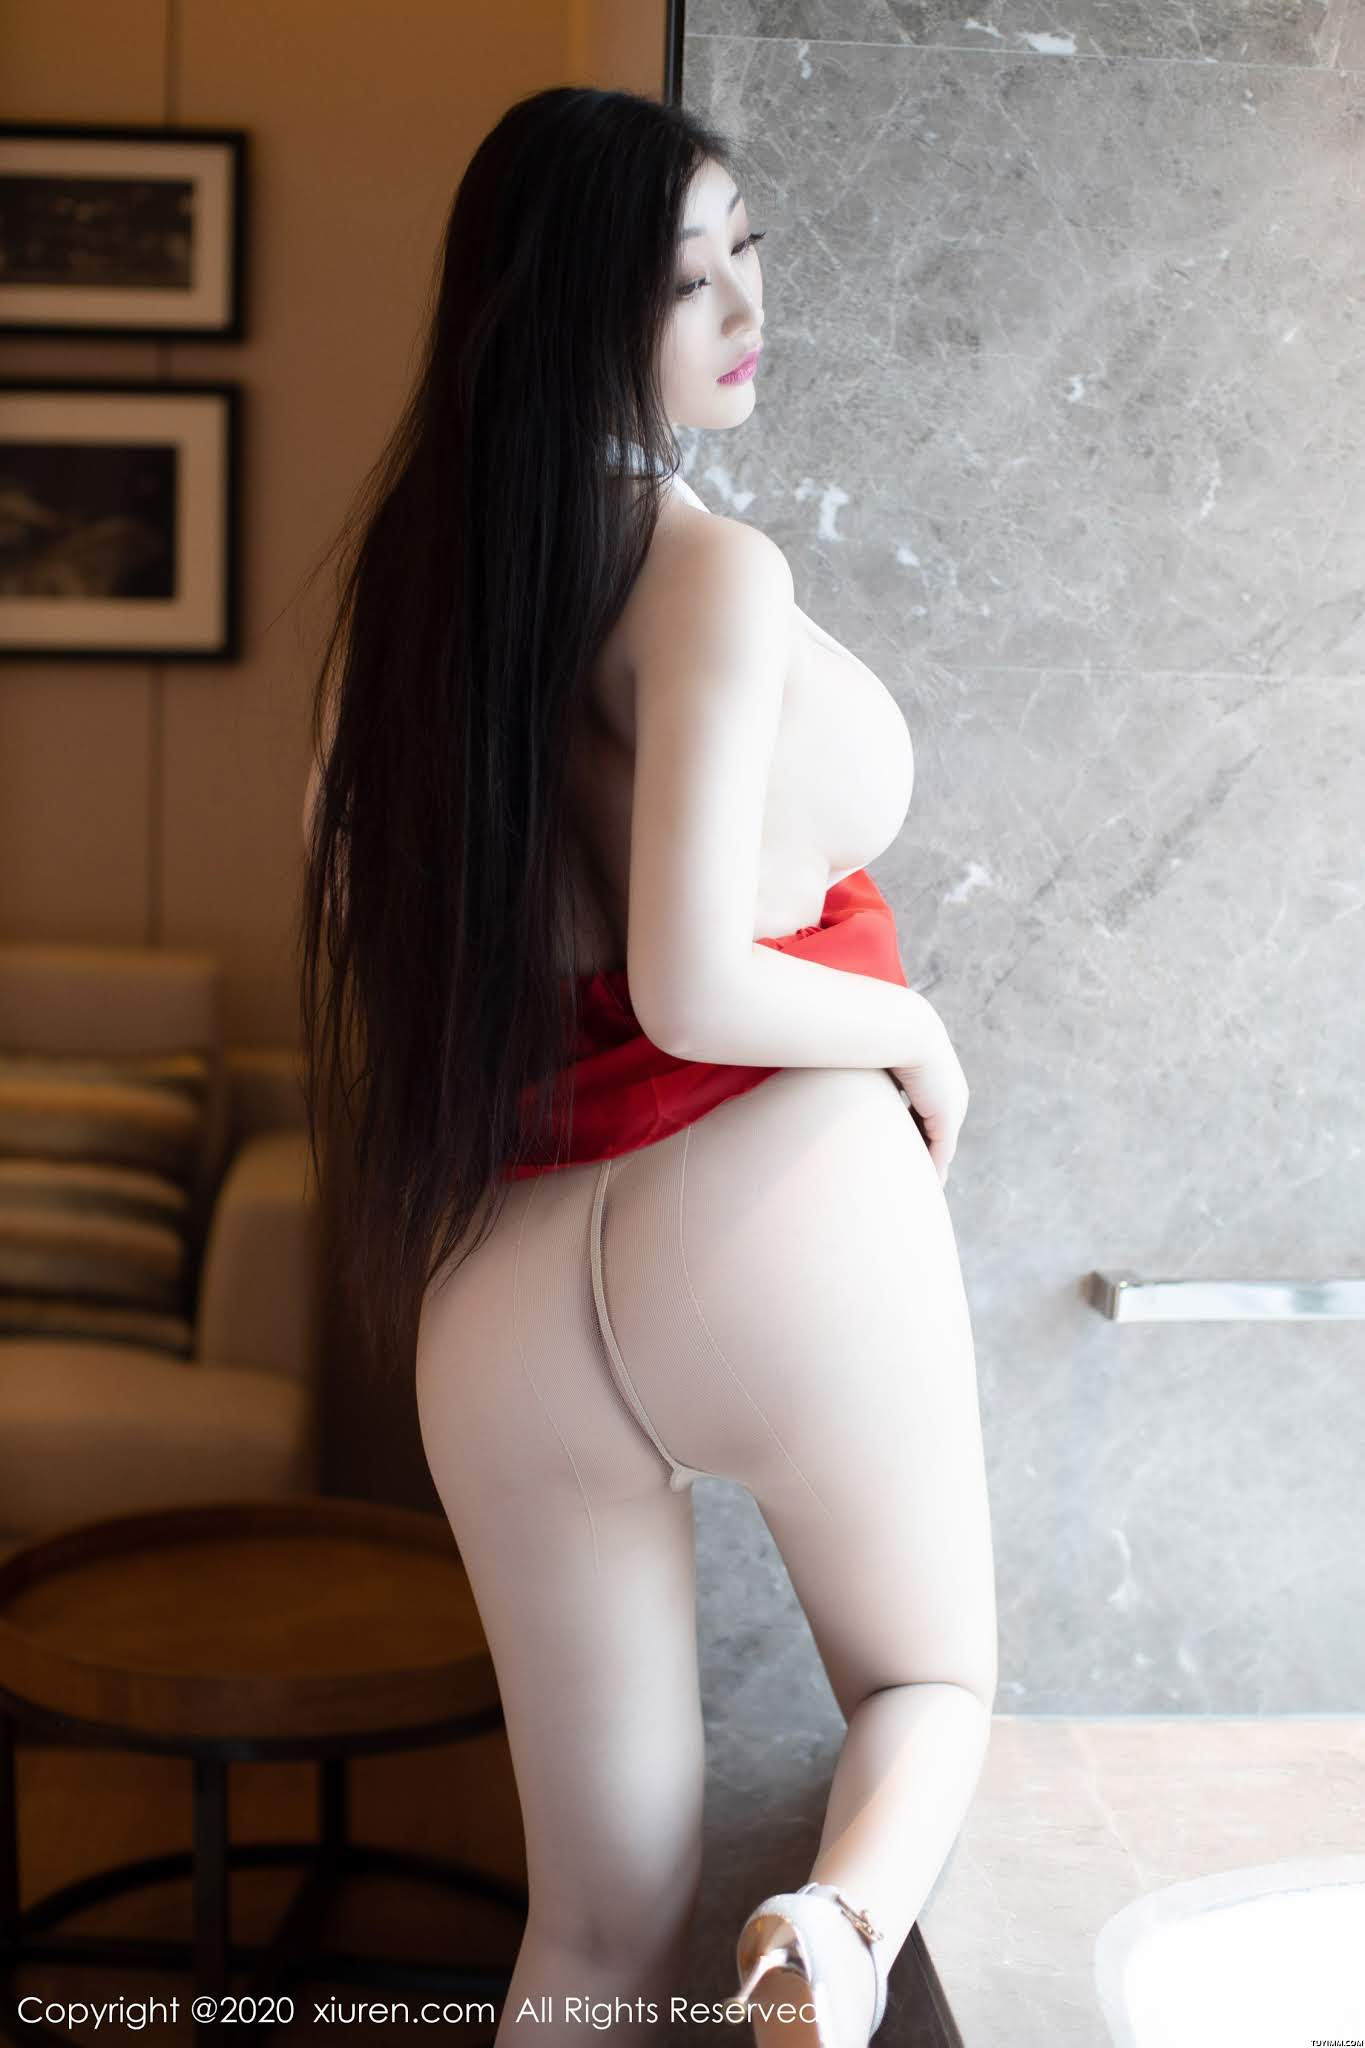 XIUREN No 1932 Toxic - Asigirl.com - Download free high quality sexy stunning asian pictures